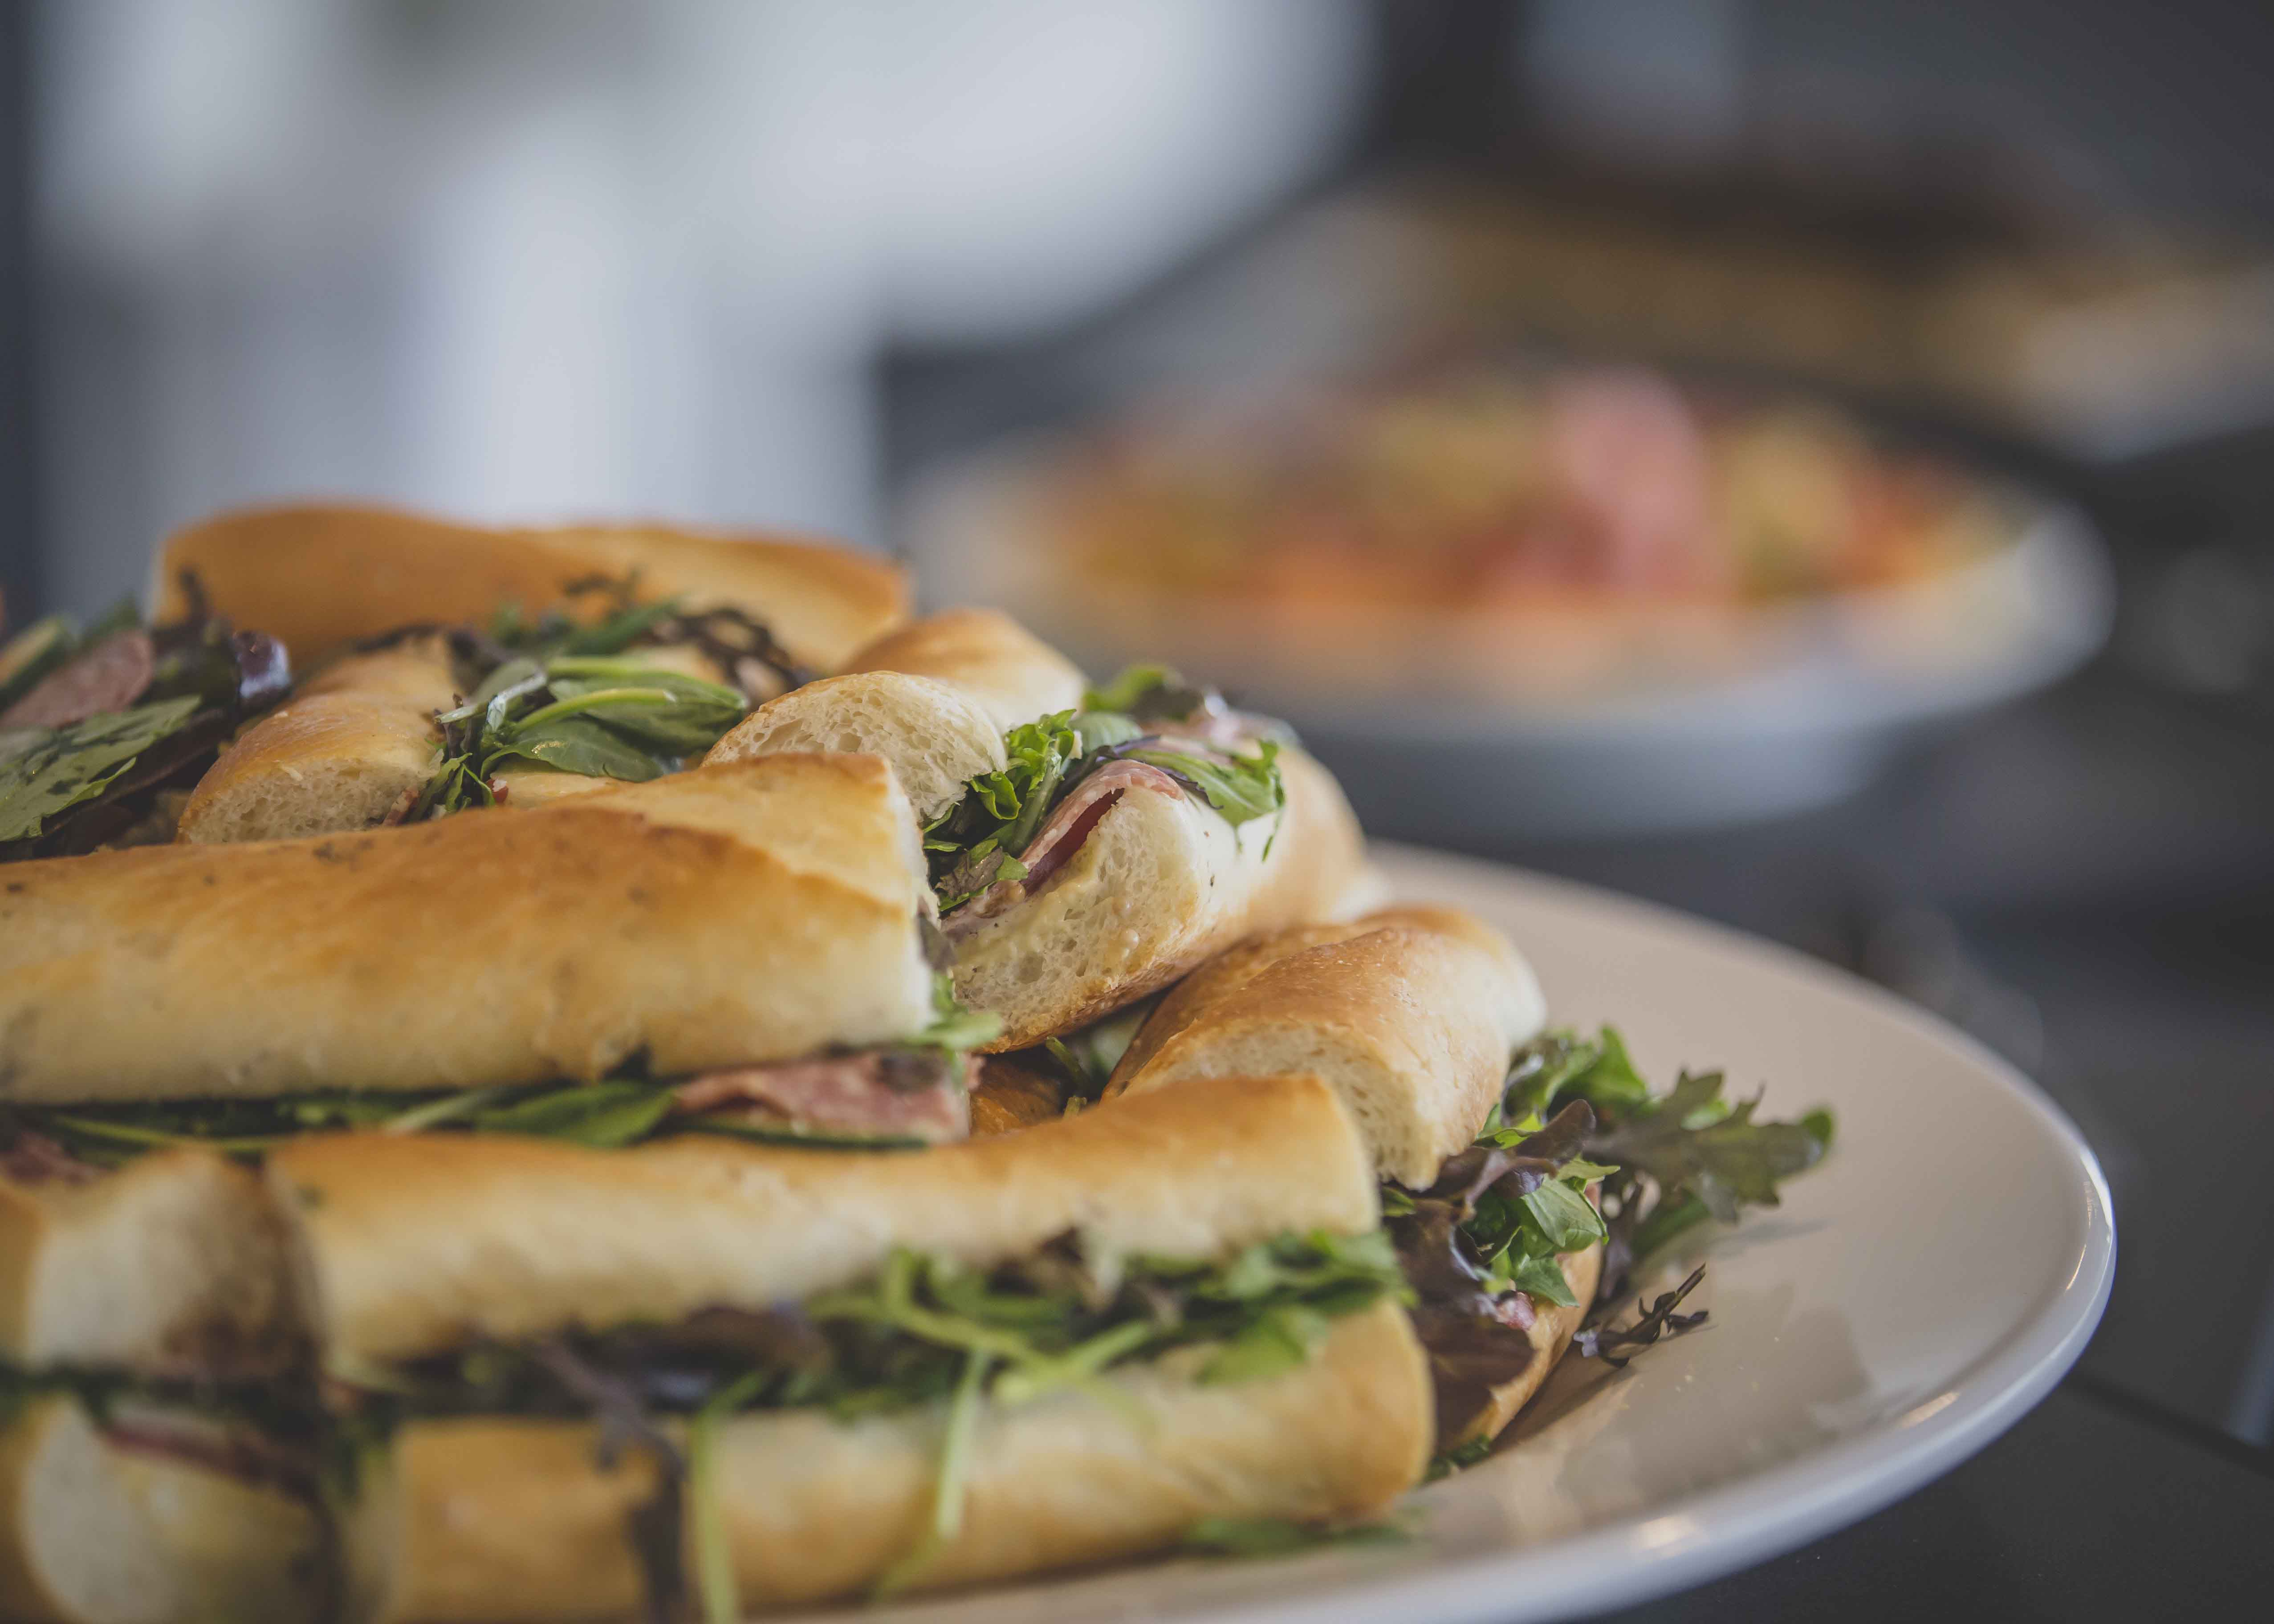 Dish Catering provide a wide range of delicious menu options for your meeting or event